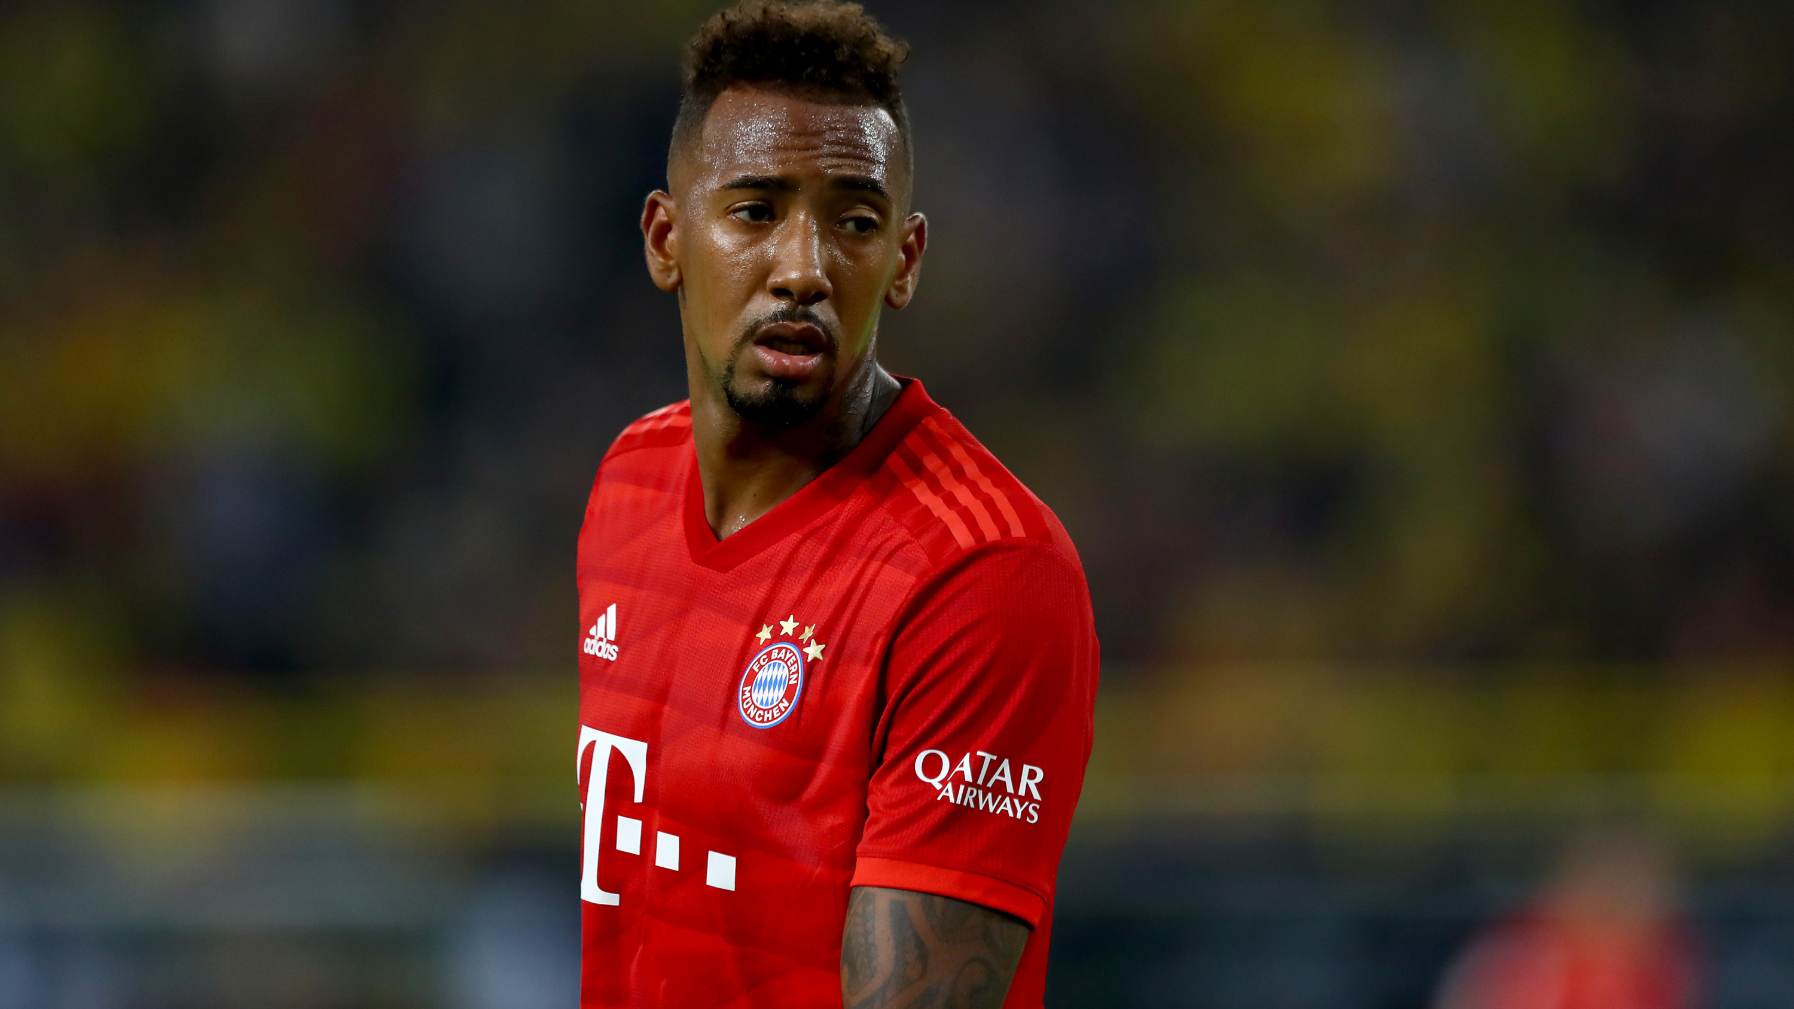 Arsenal and chelsea go for boateng - Bóng Đá